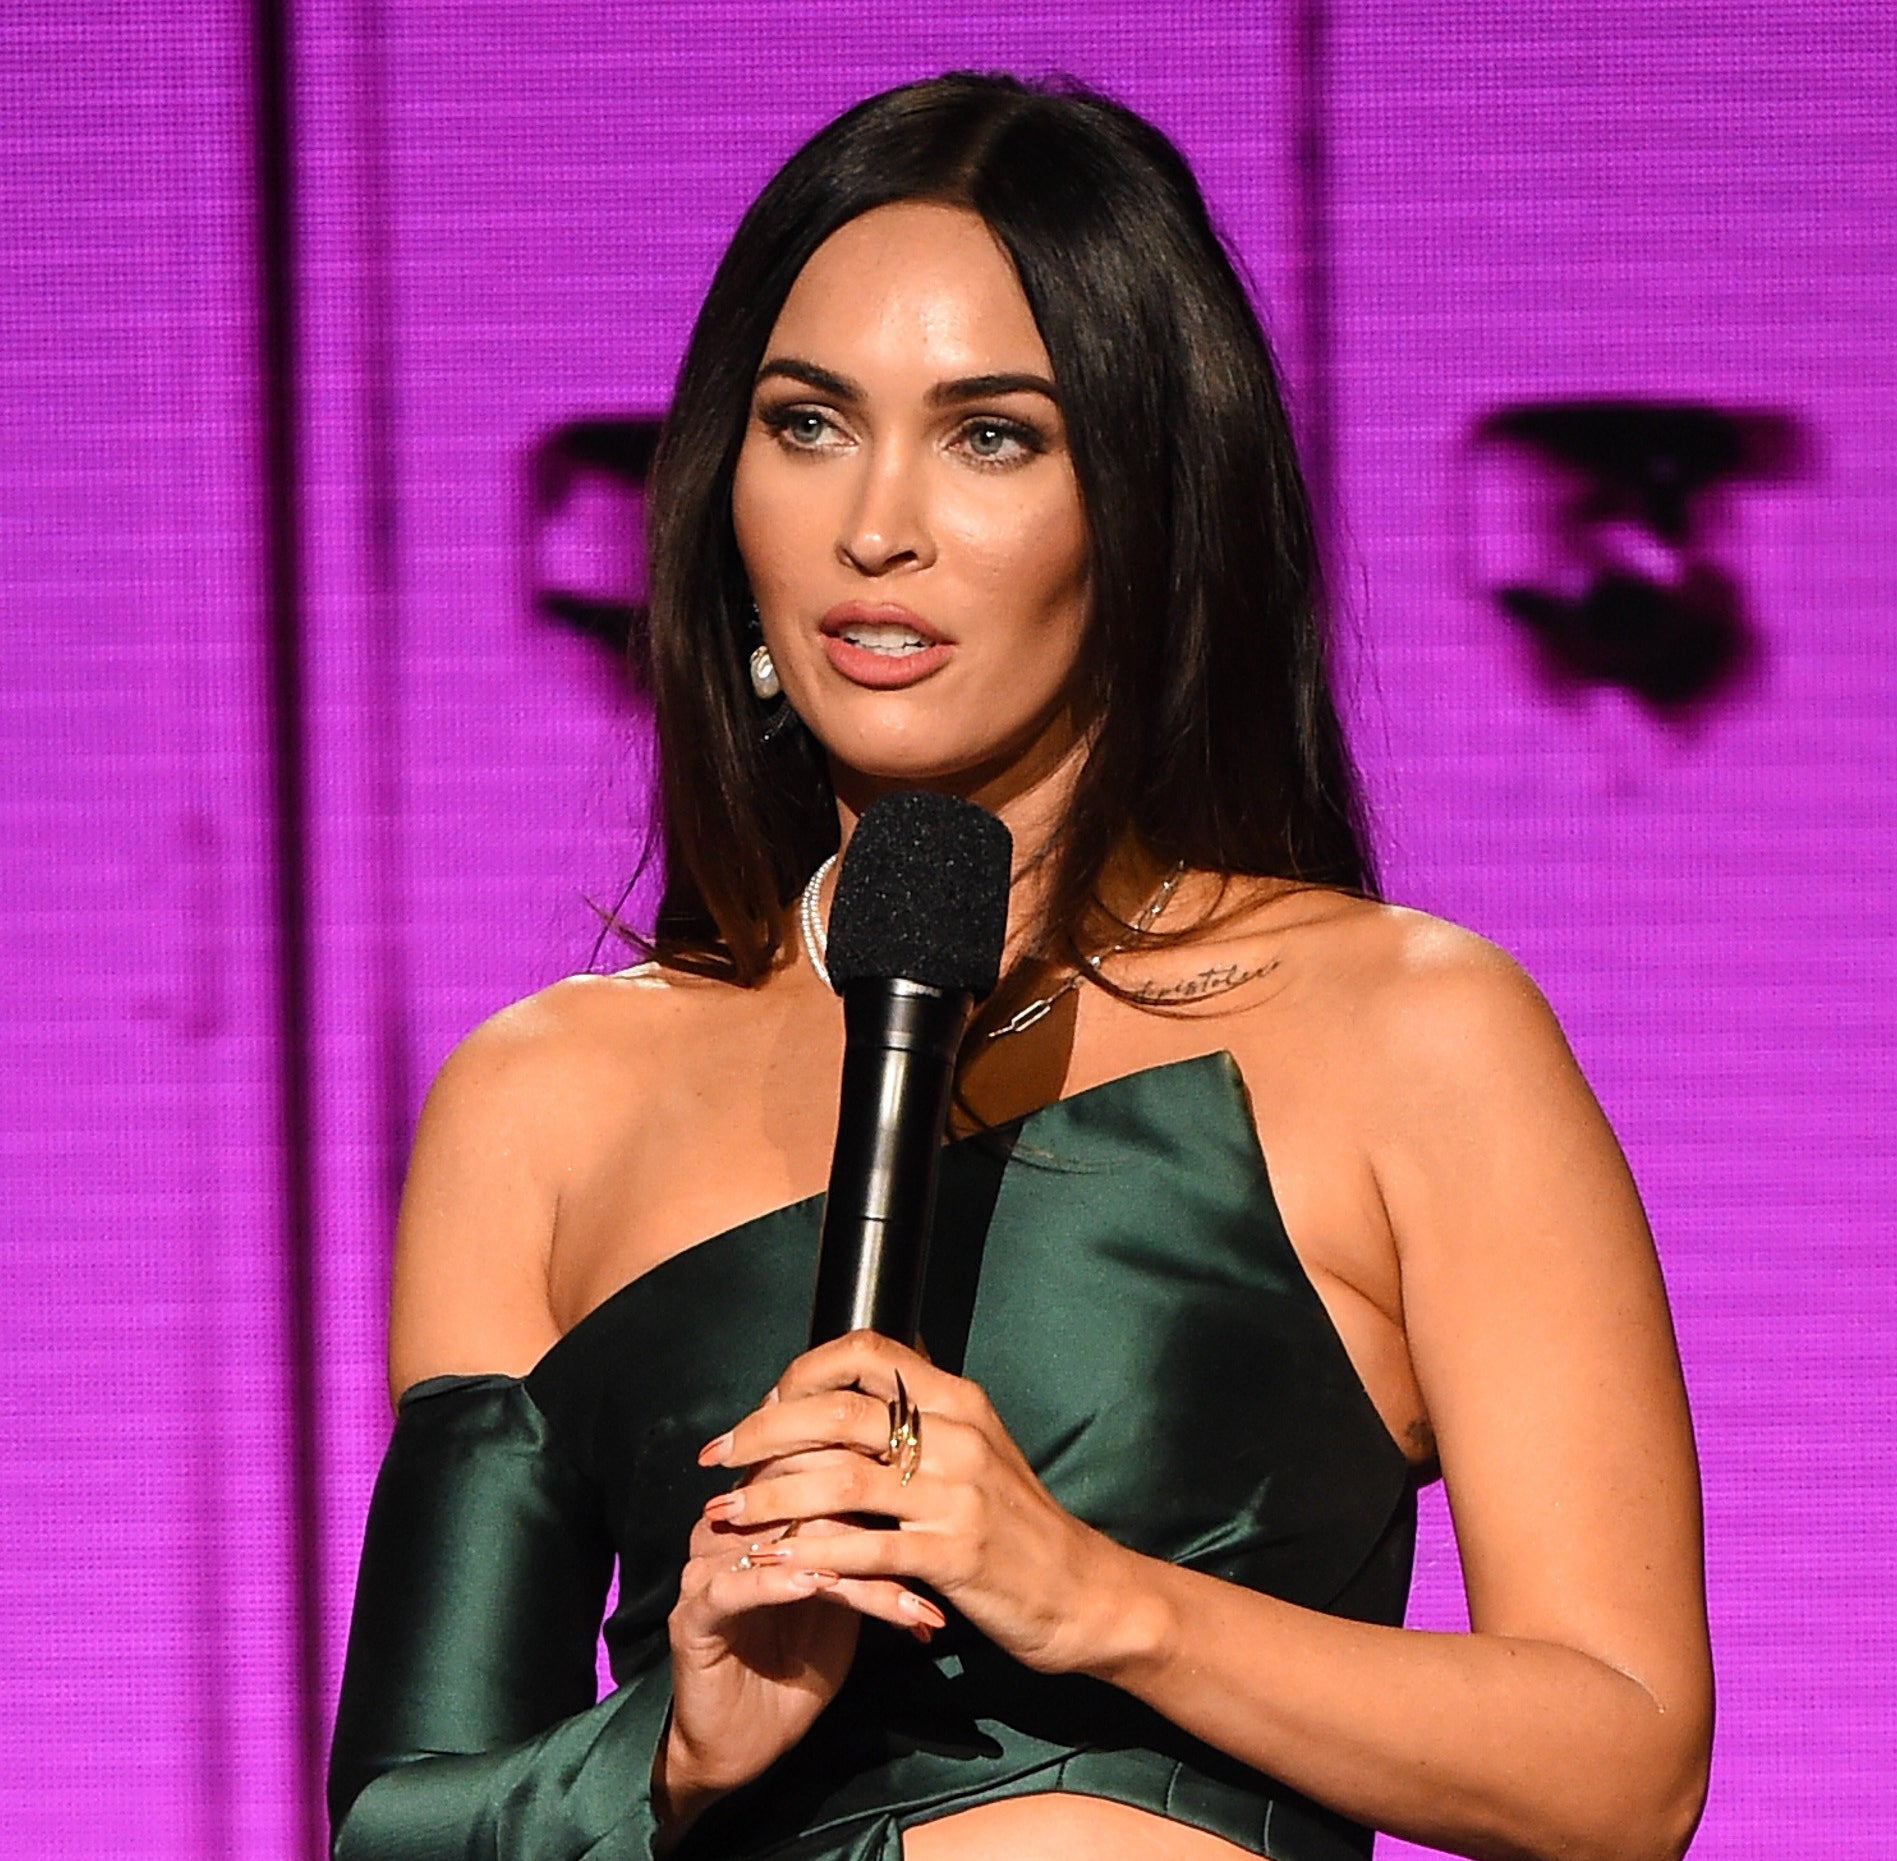 Megan Fox speaks into a microphone onstage at the 2020 American Music Awards